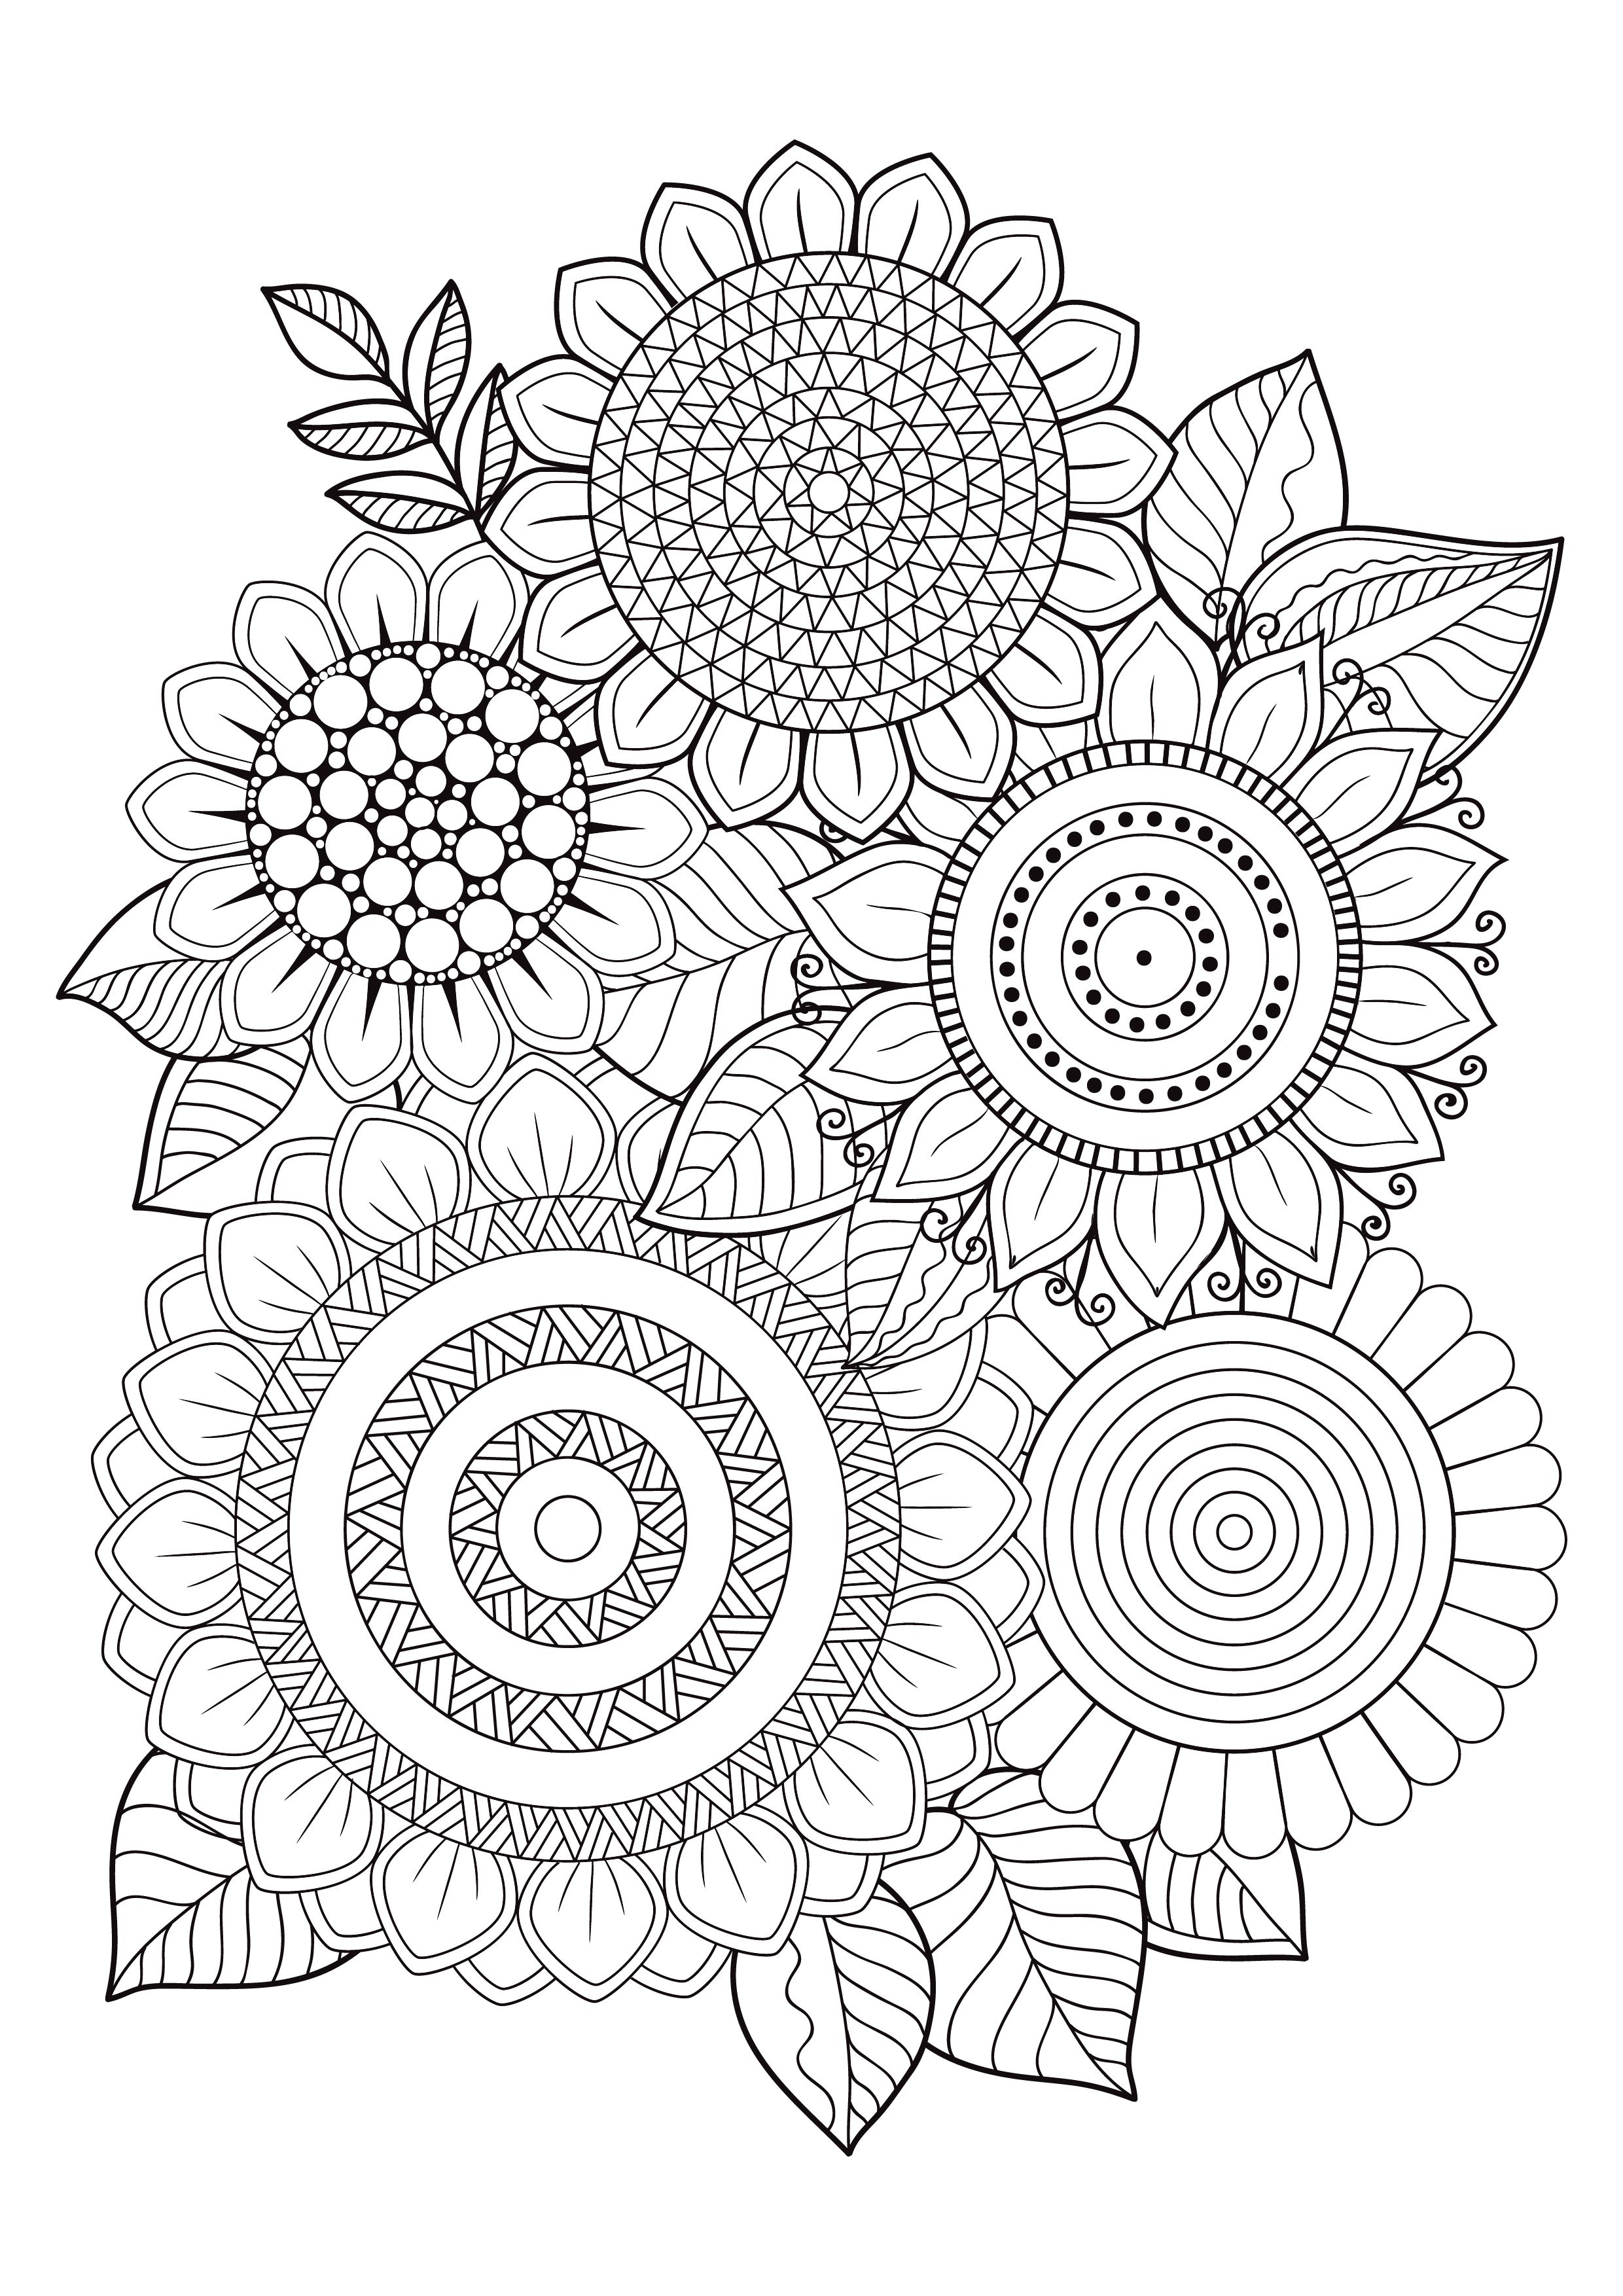 Mindfulness Coloring Pages 12 Flowers Pattern Coloring Pages